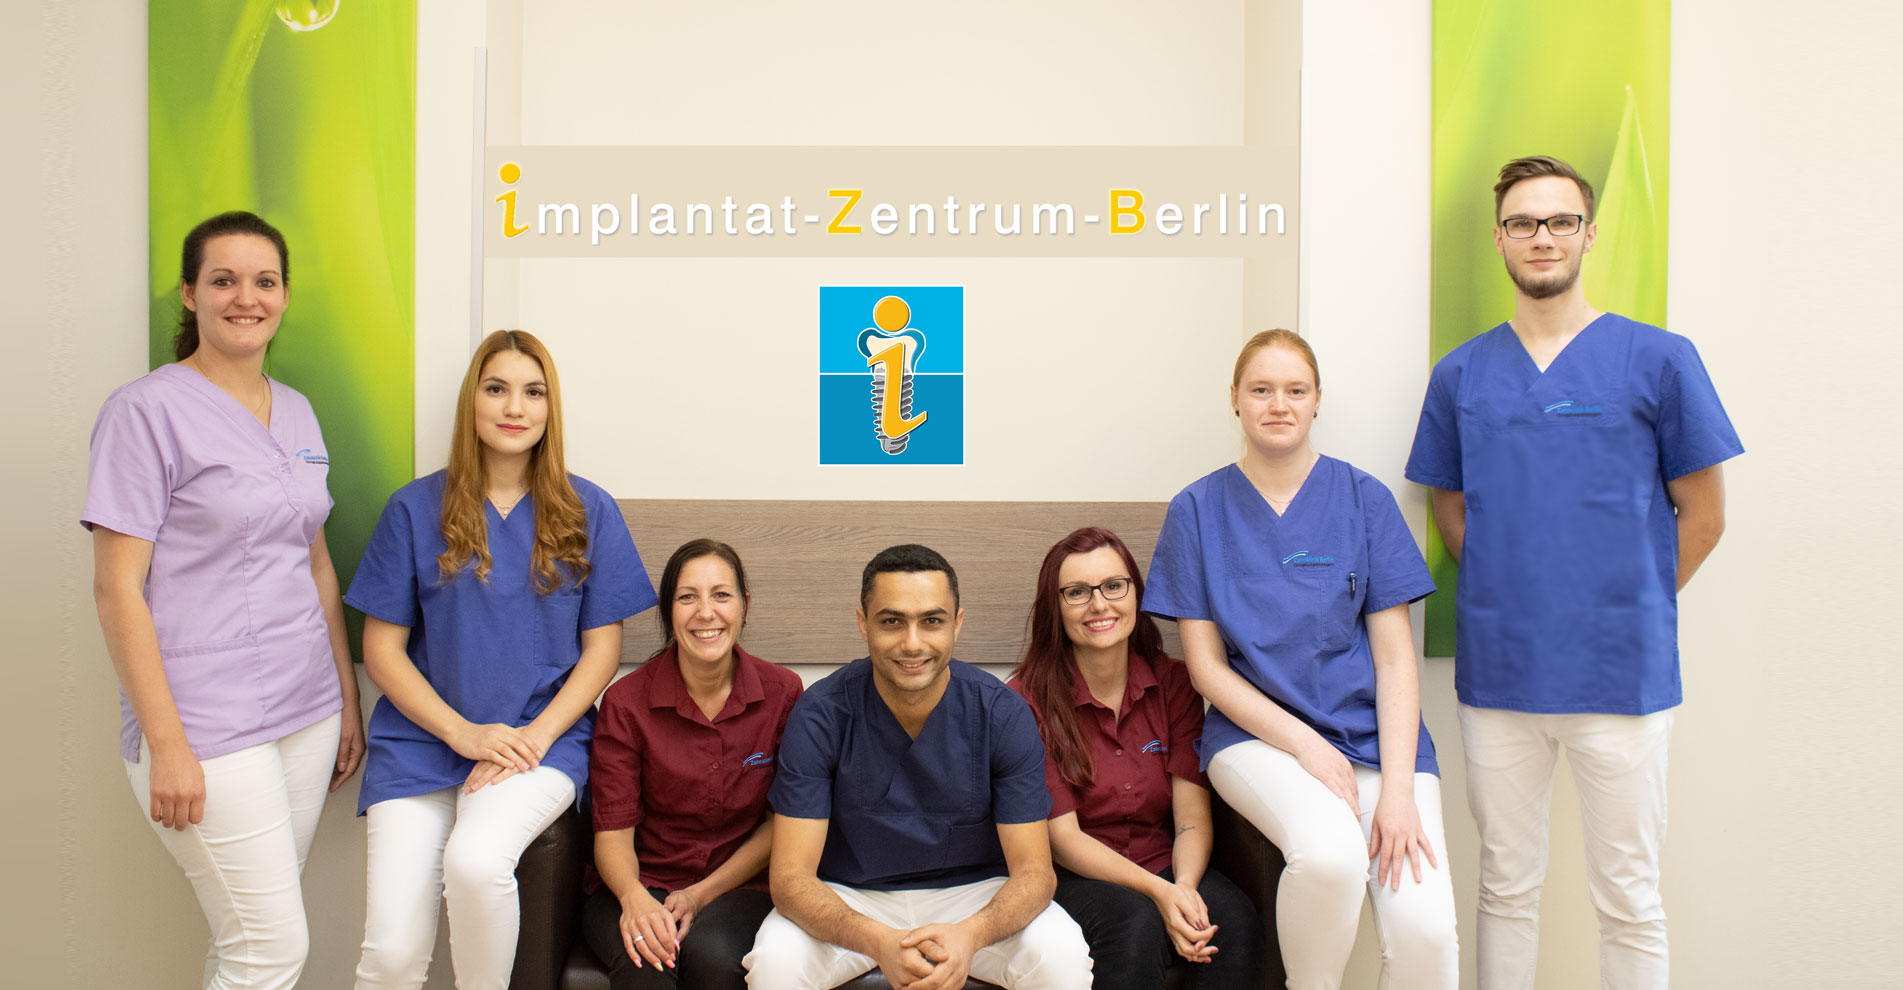 Implantatzentrum Berlin